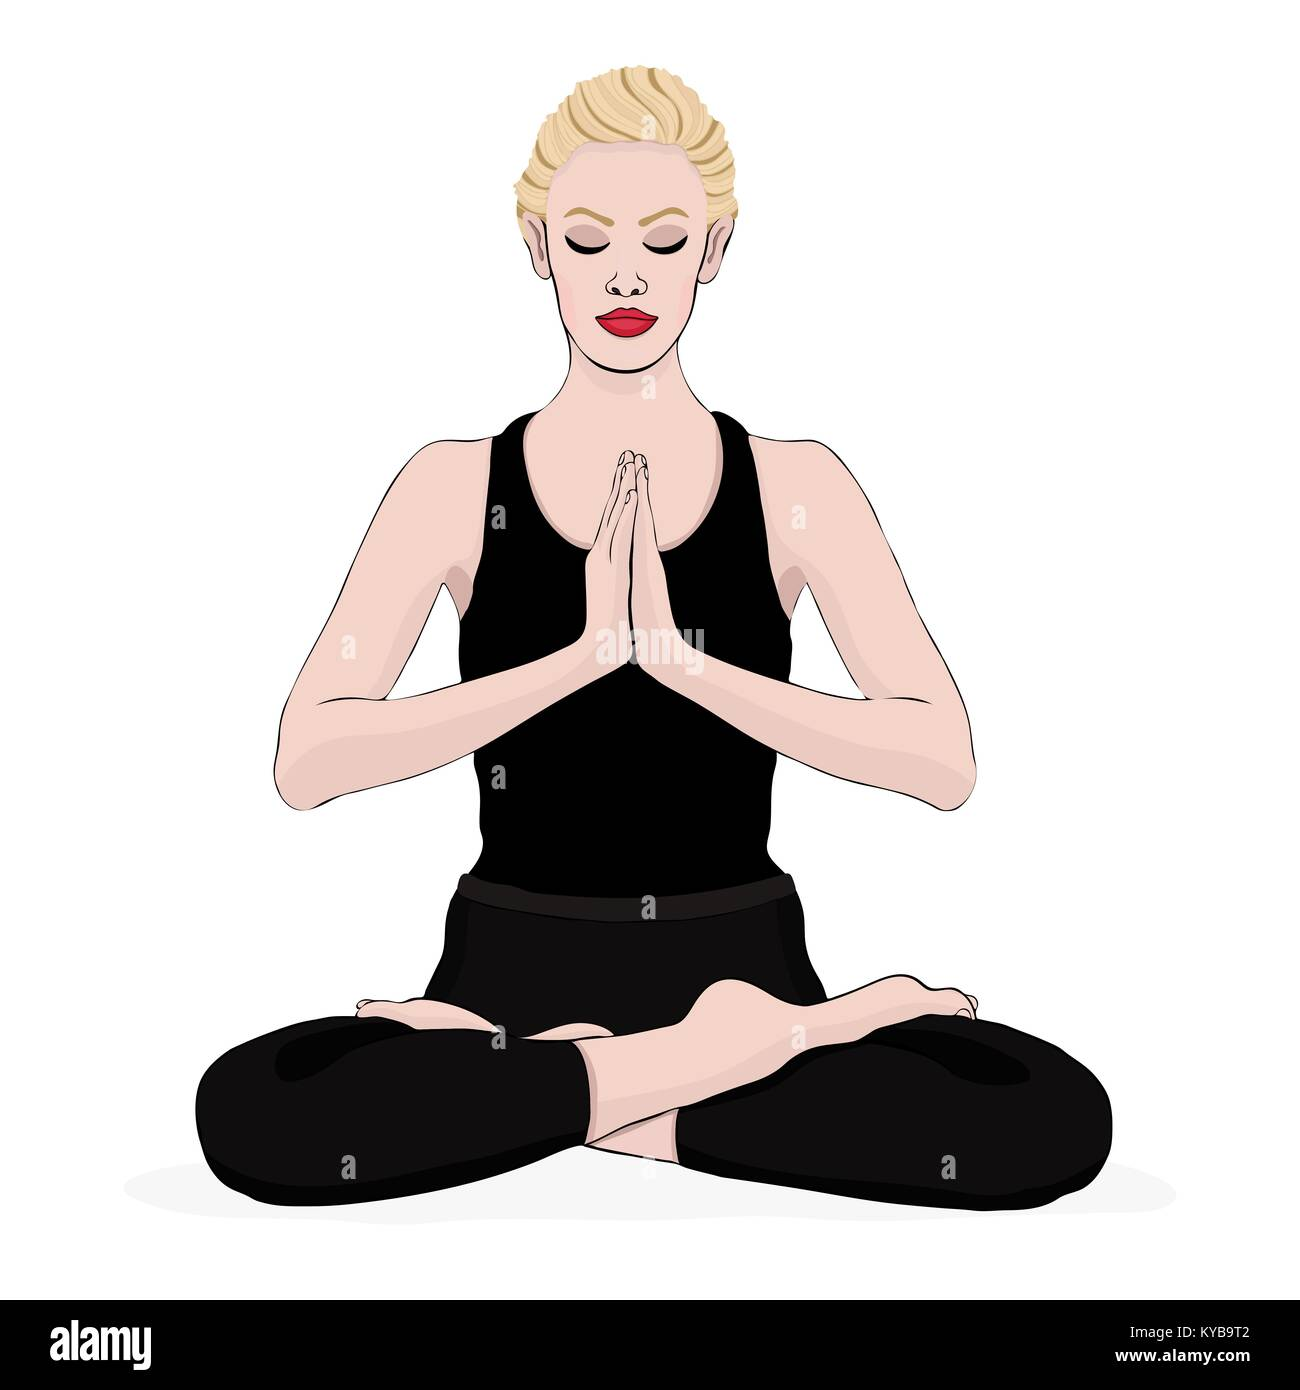 Yoga Pose Woman Meditating In A Lotus Vector Multicolored Drawing Portrait Meditation Relaxation Cartoon Girl Sitting Cross Legged And Hands Clasped